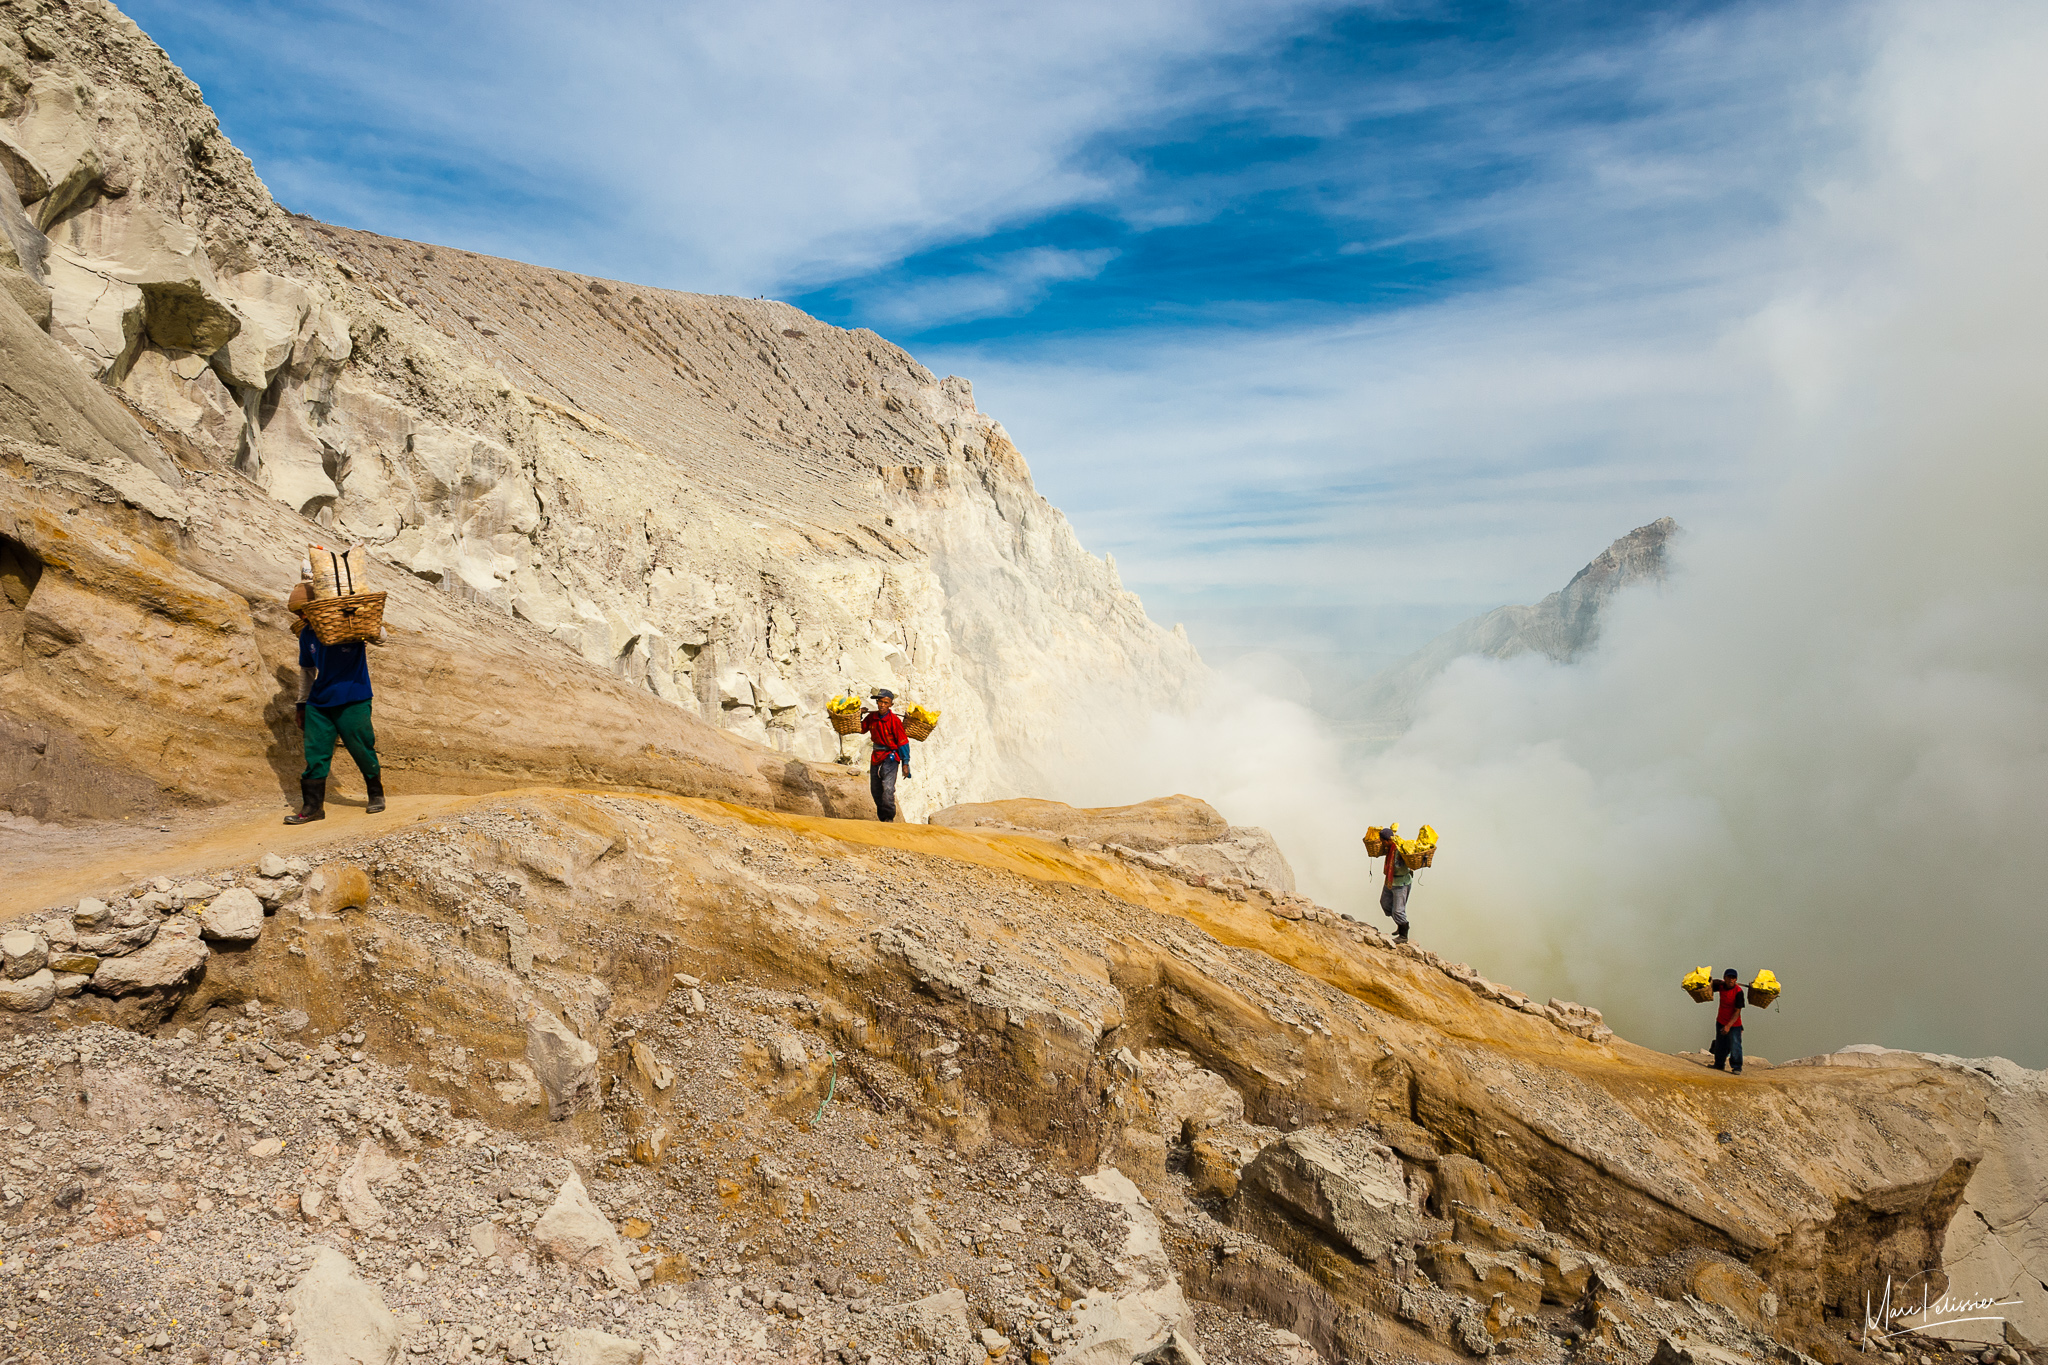 Into the Kawah Ijen crater, Indonesia